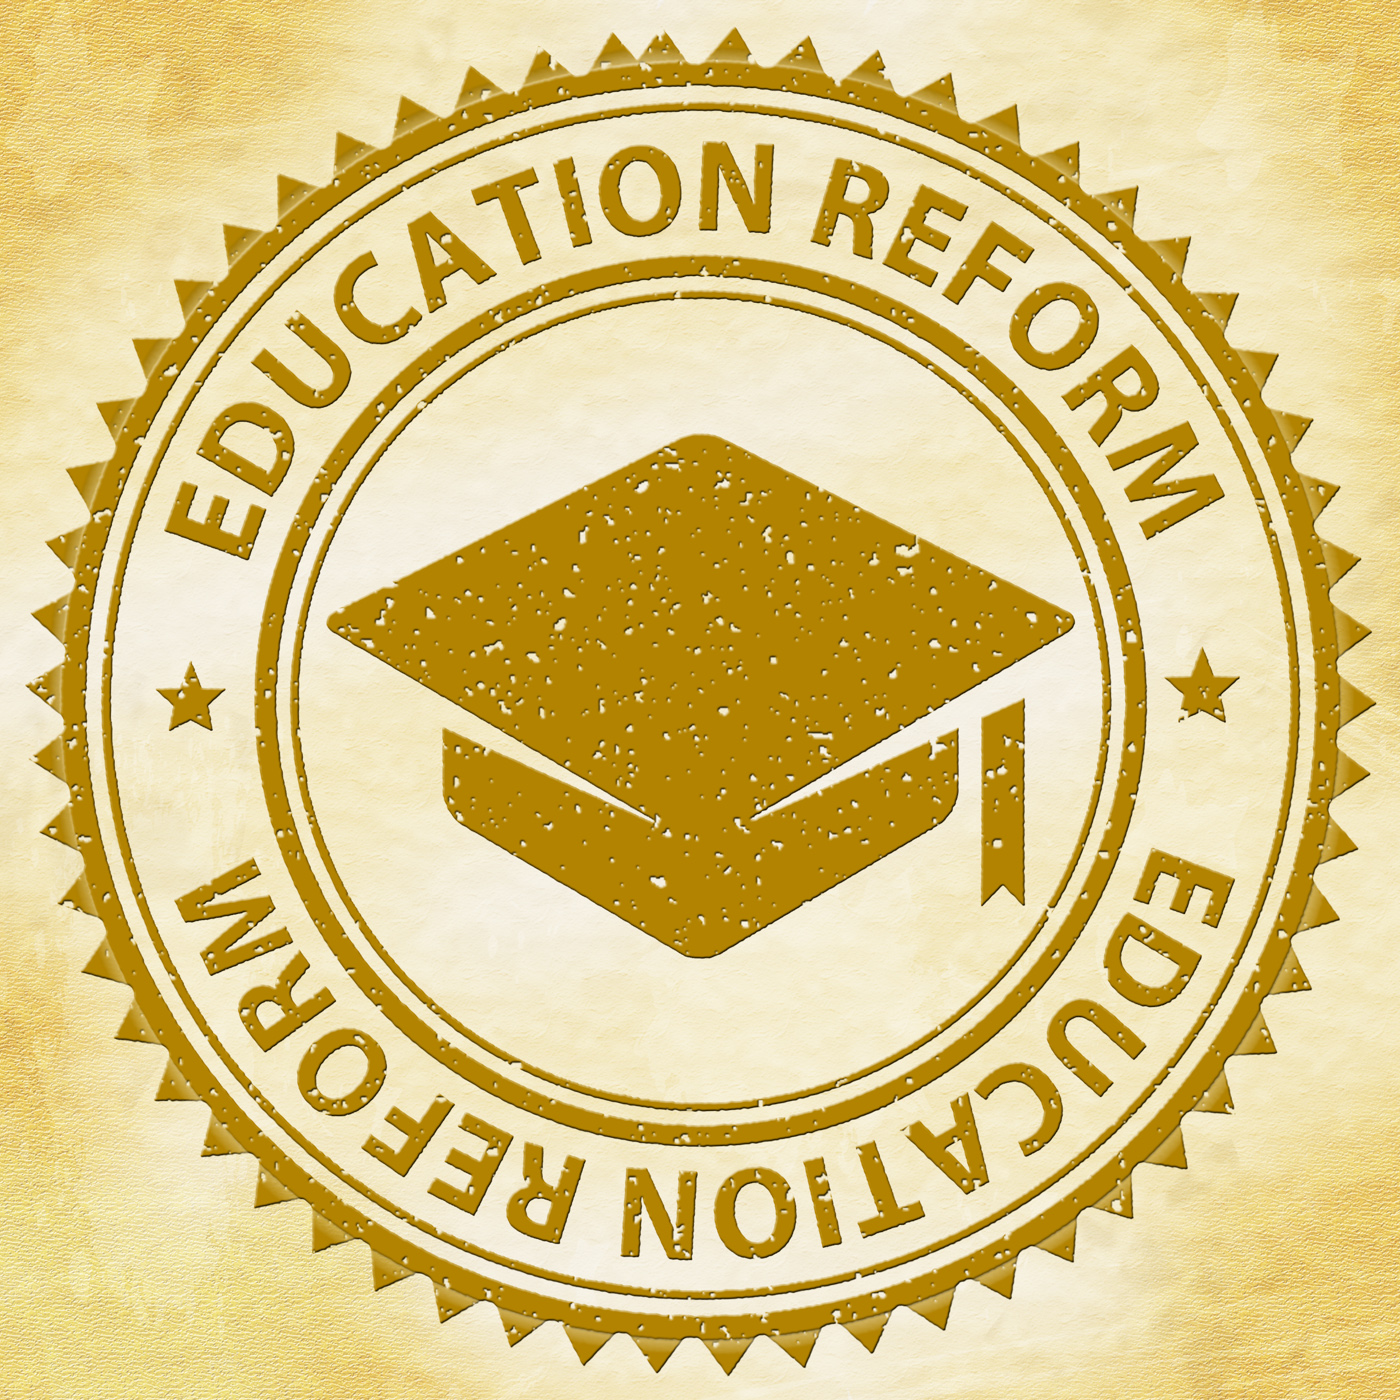 Education Reform Shows Make Better And Amended, Amend, Reforms, Studying, Study, HQ Photo